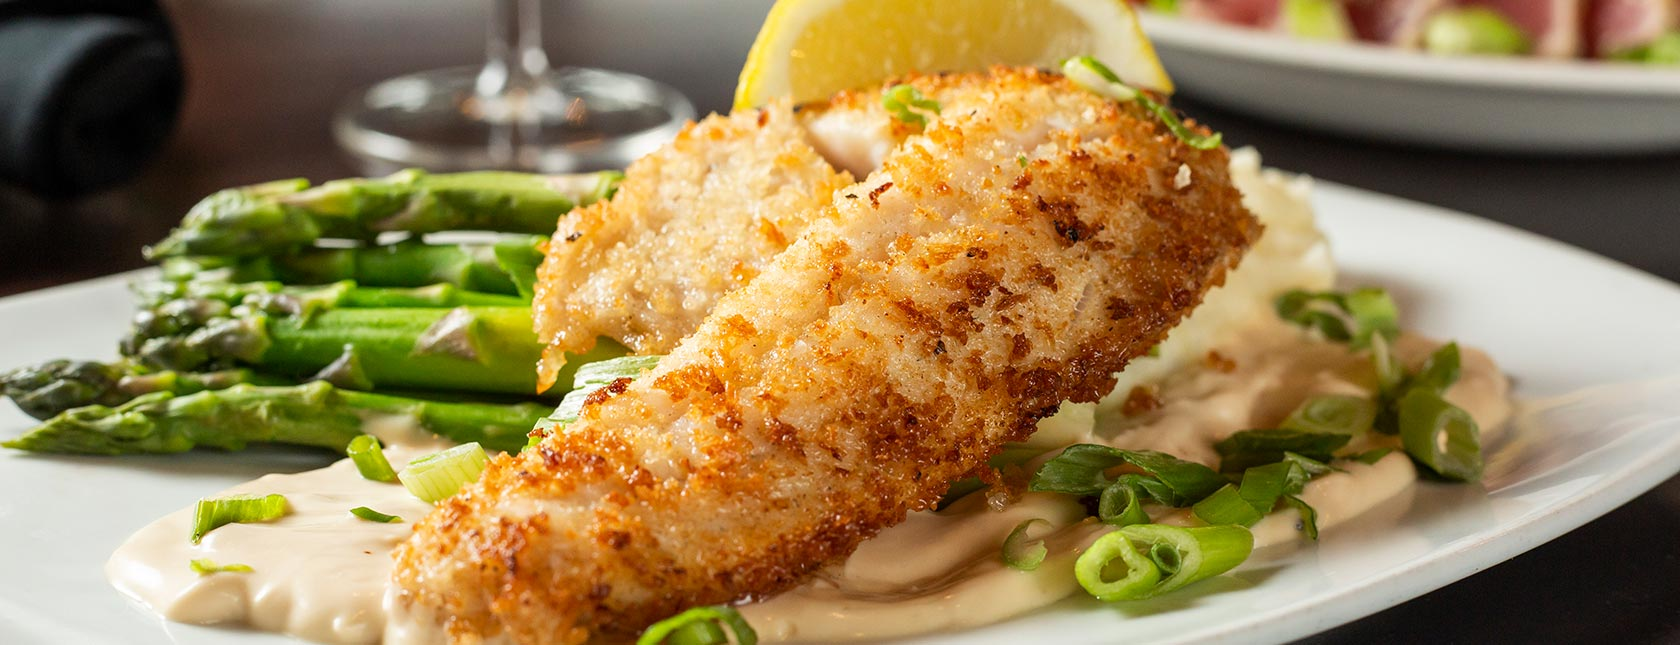 Panko-crusted, pan-fried walleye fish plated with asparagus